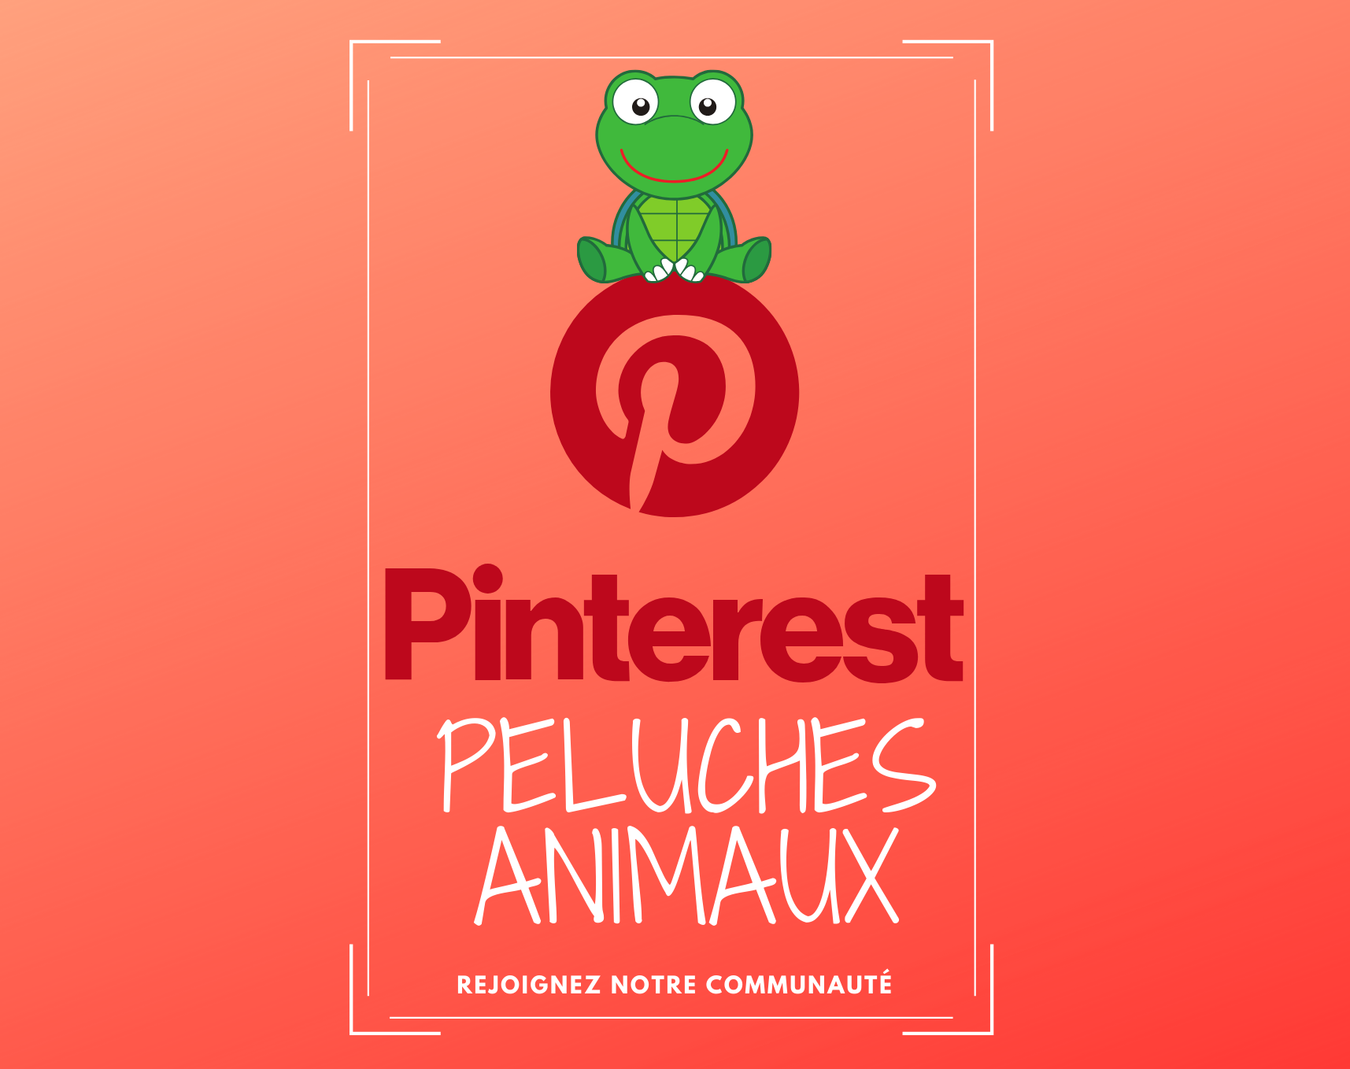 Pinterest animaux